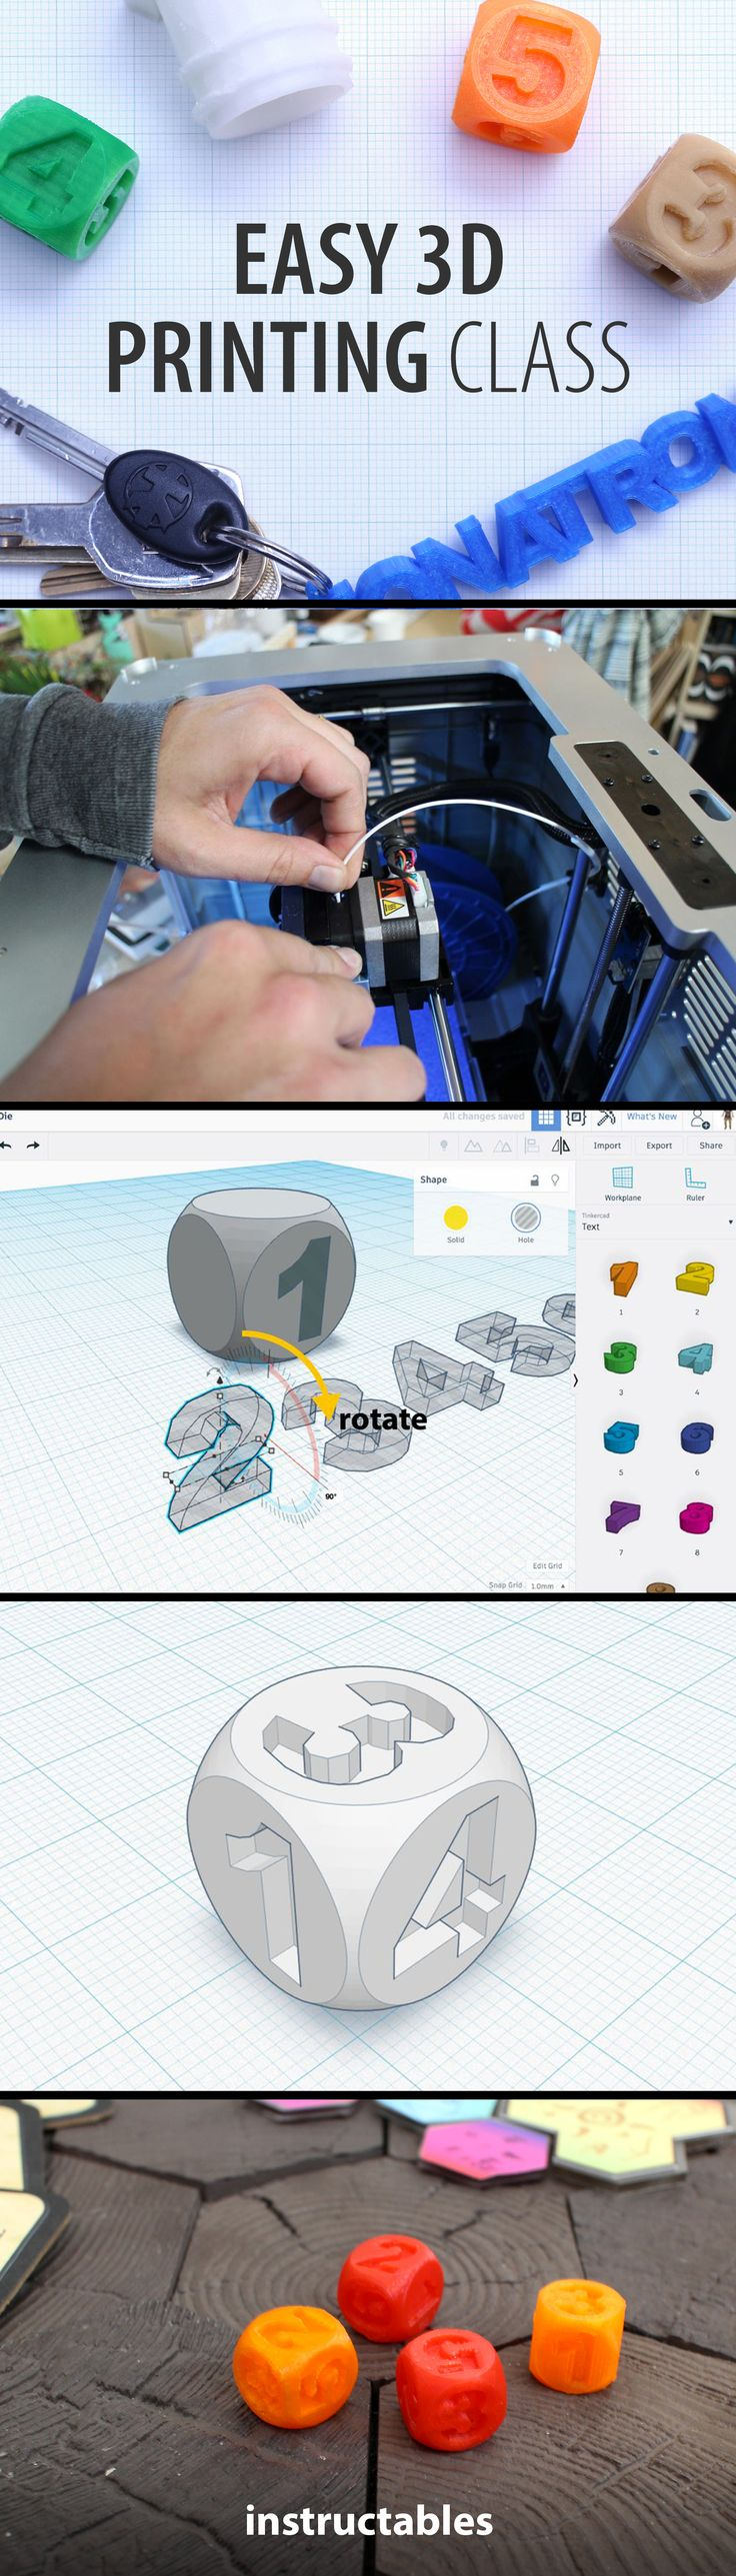 Learn 3D printing basics in this easy-to-follow class.